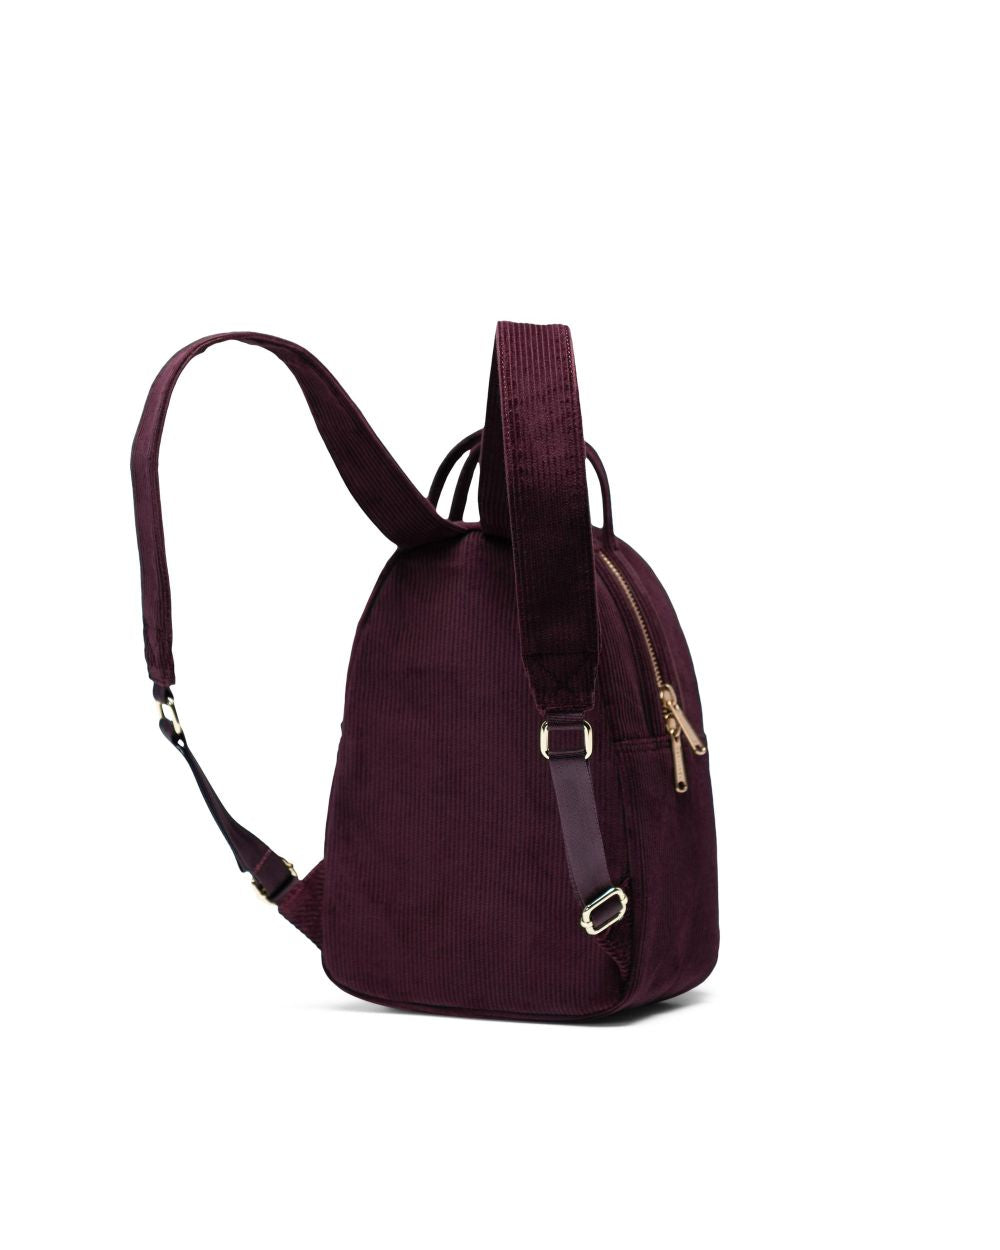 NOVA BACKPACK MINI CORDUROY - PLUM